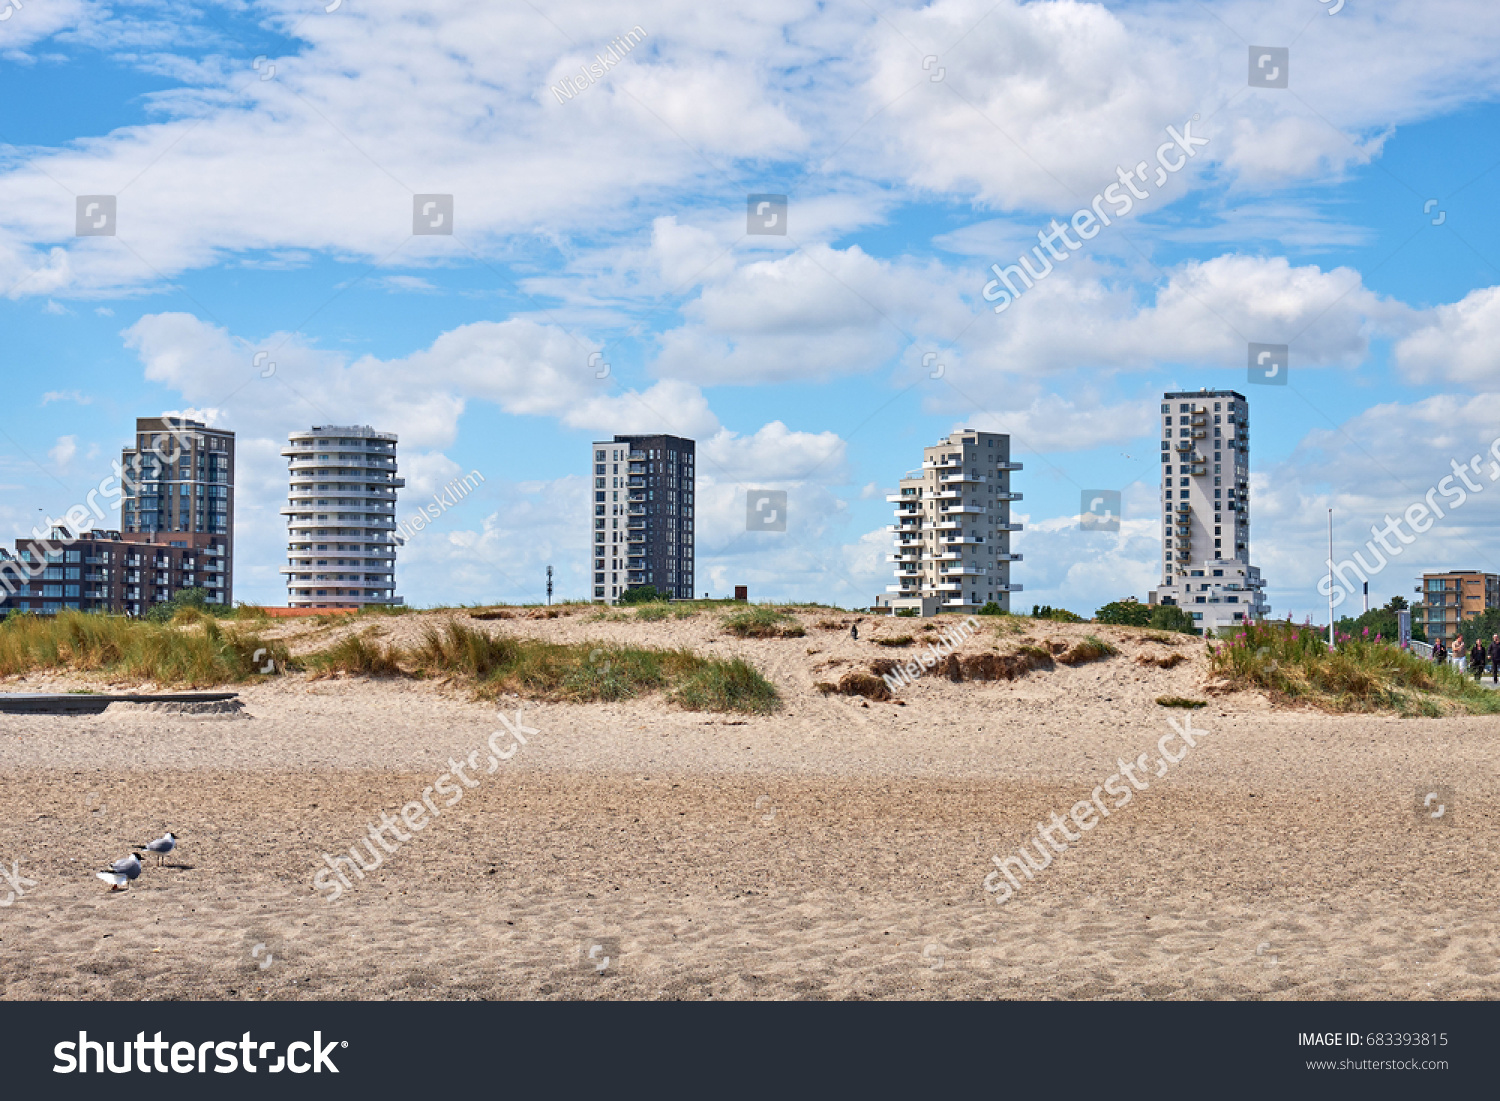 Amager Beach Park copenhagen denmark june 26 2017 modern | royalty-free stock